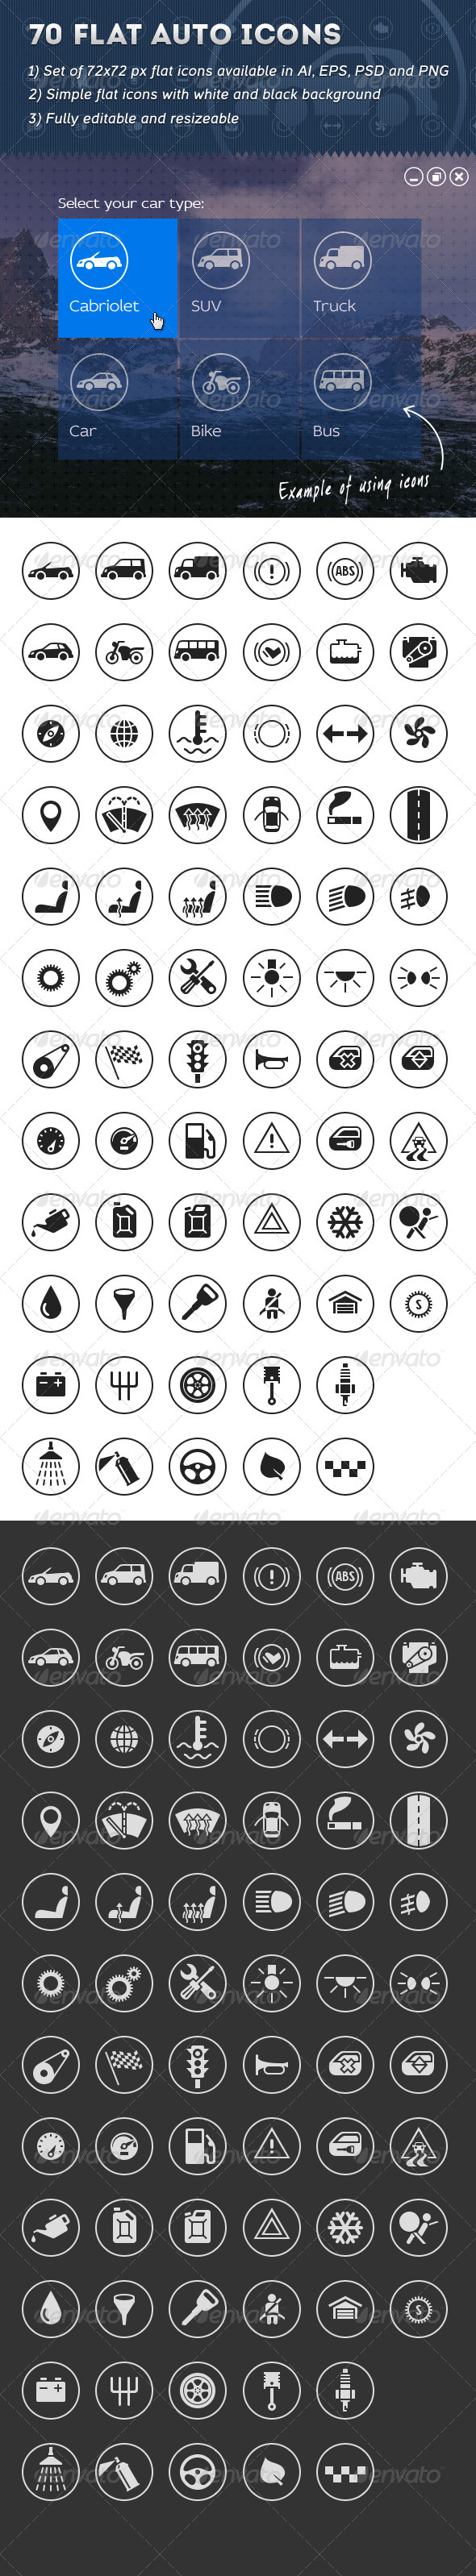 GraphicRiver 70 Flat Auto Icons 5378948